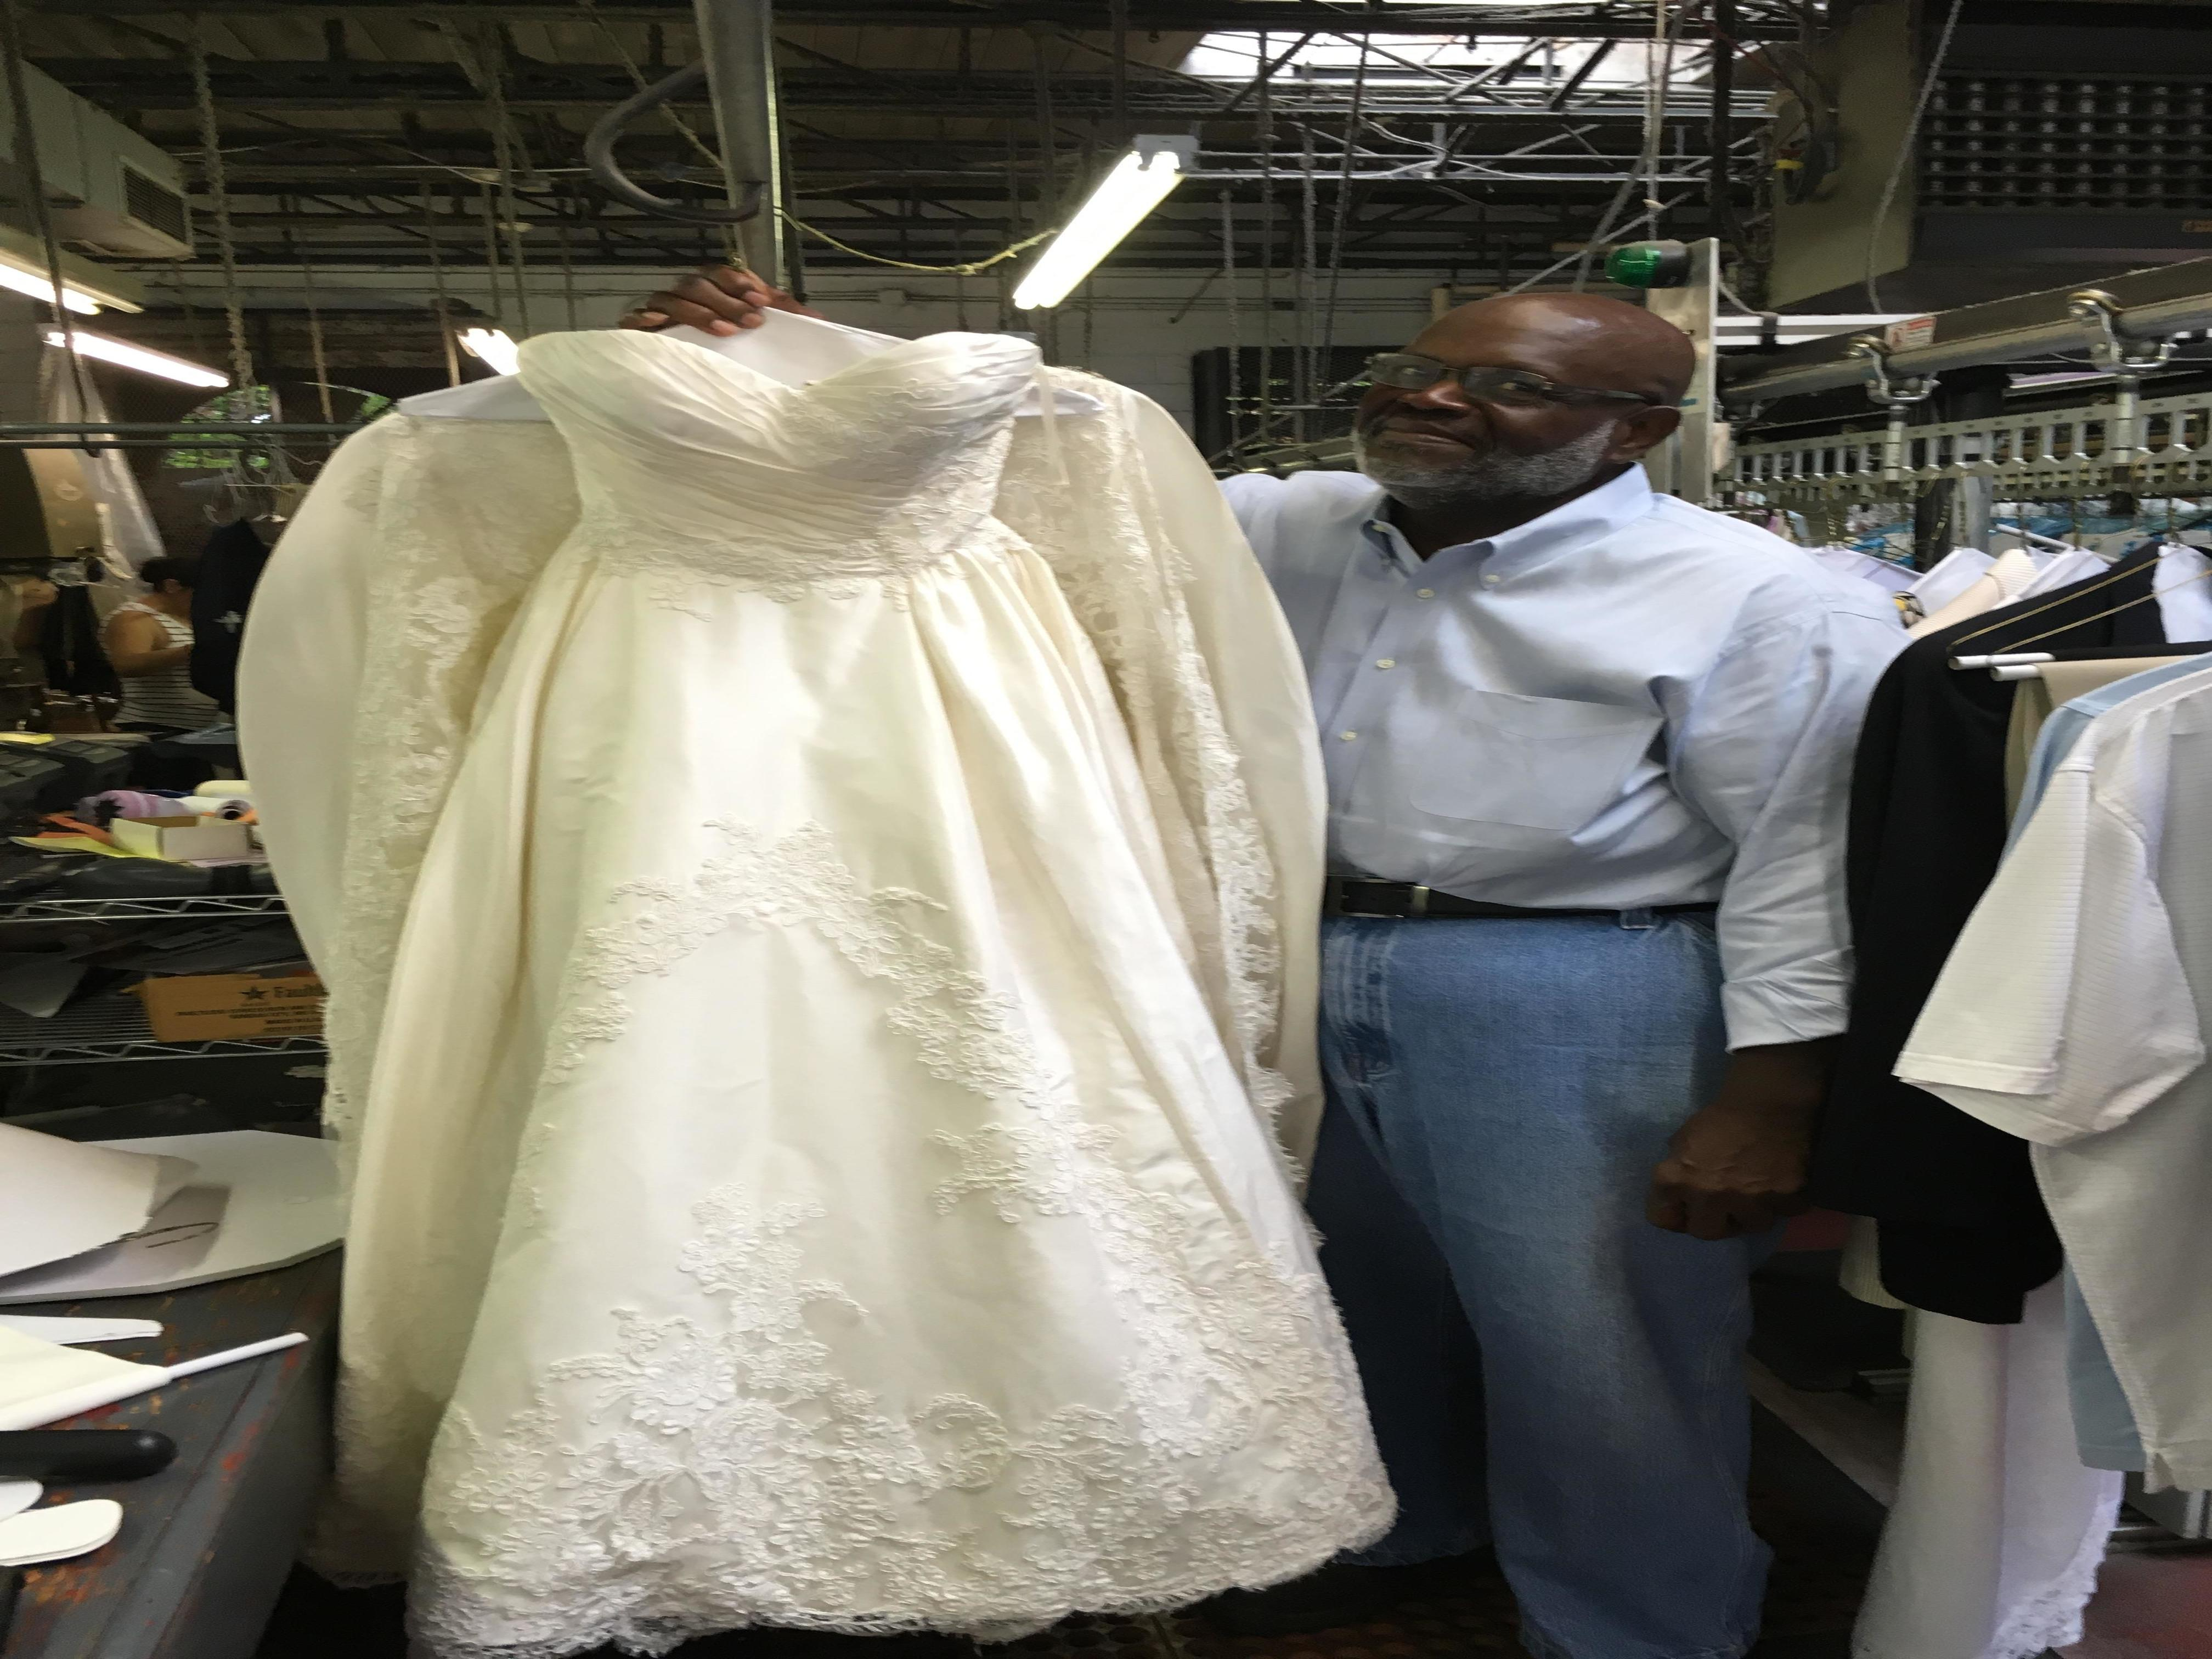 Vogue cleaners in birmingham al 205 322 5 for Wedding dress cleaning birmingham